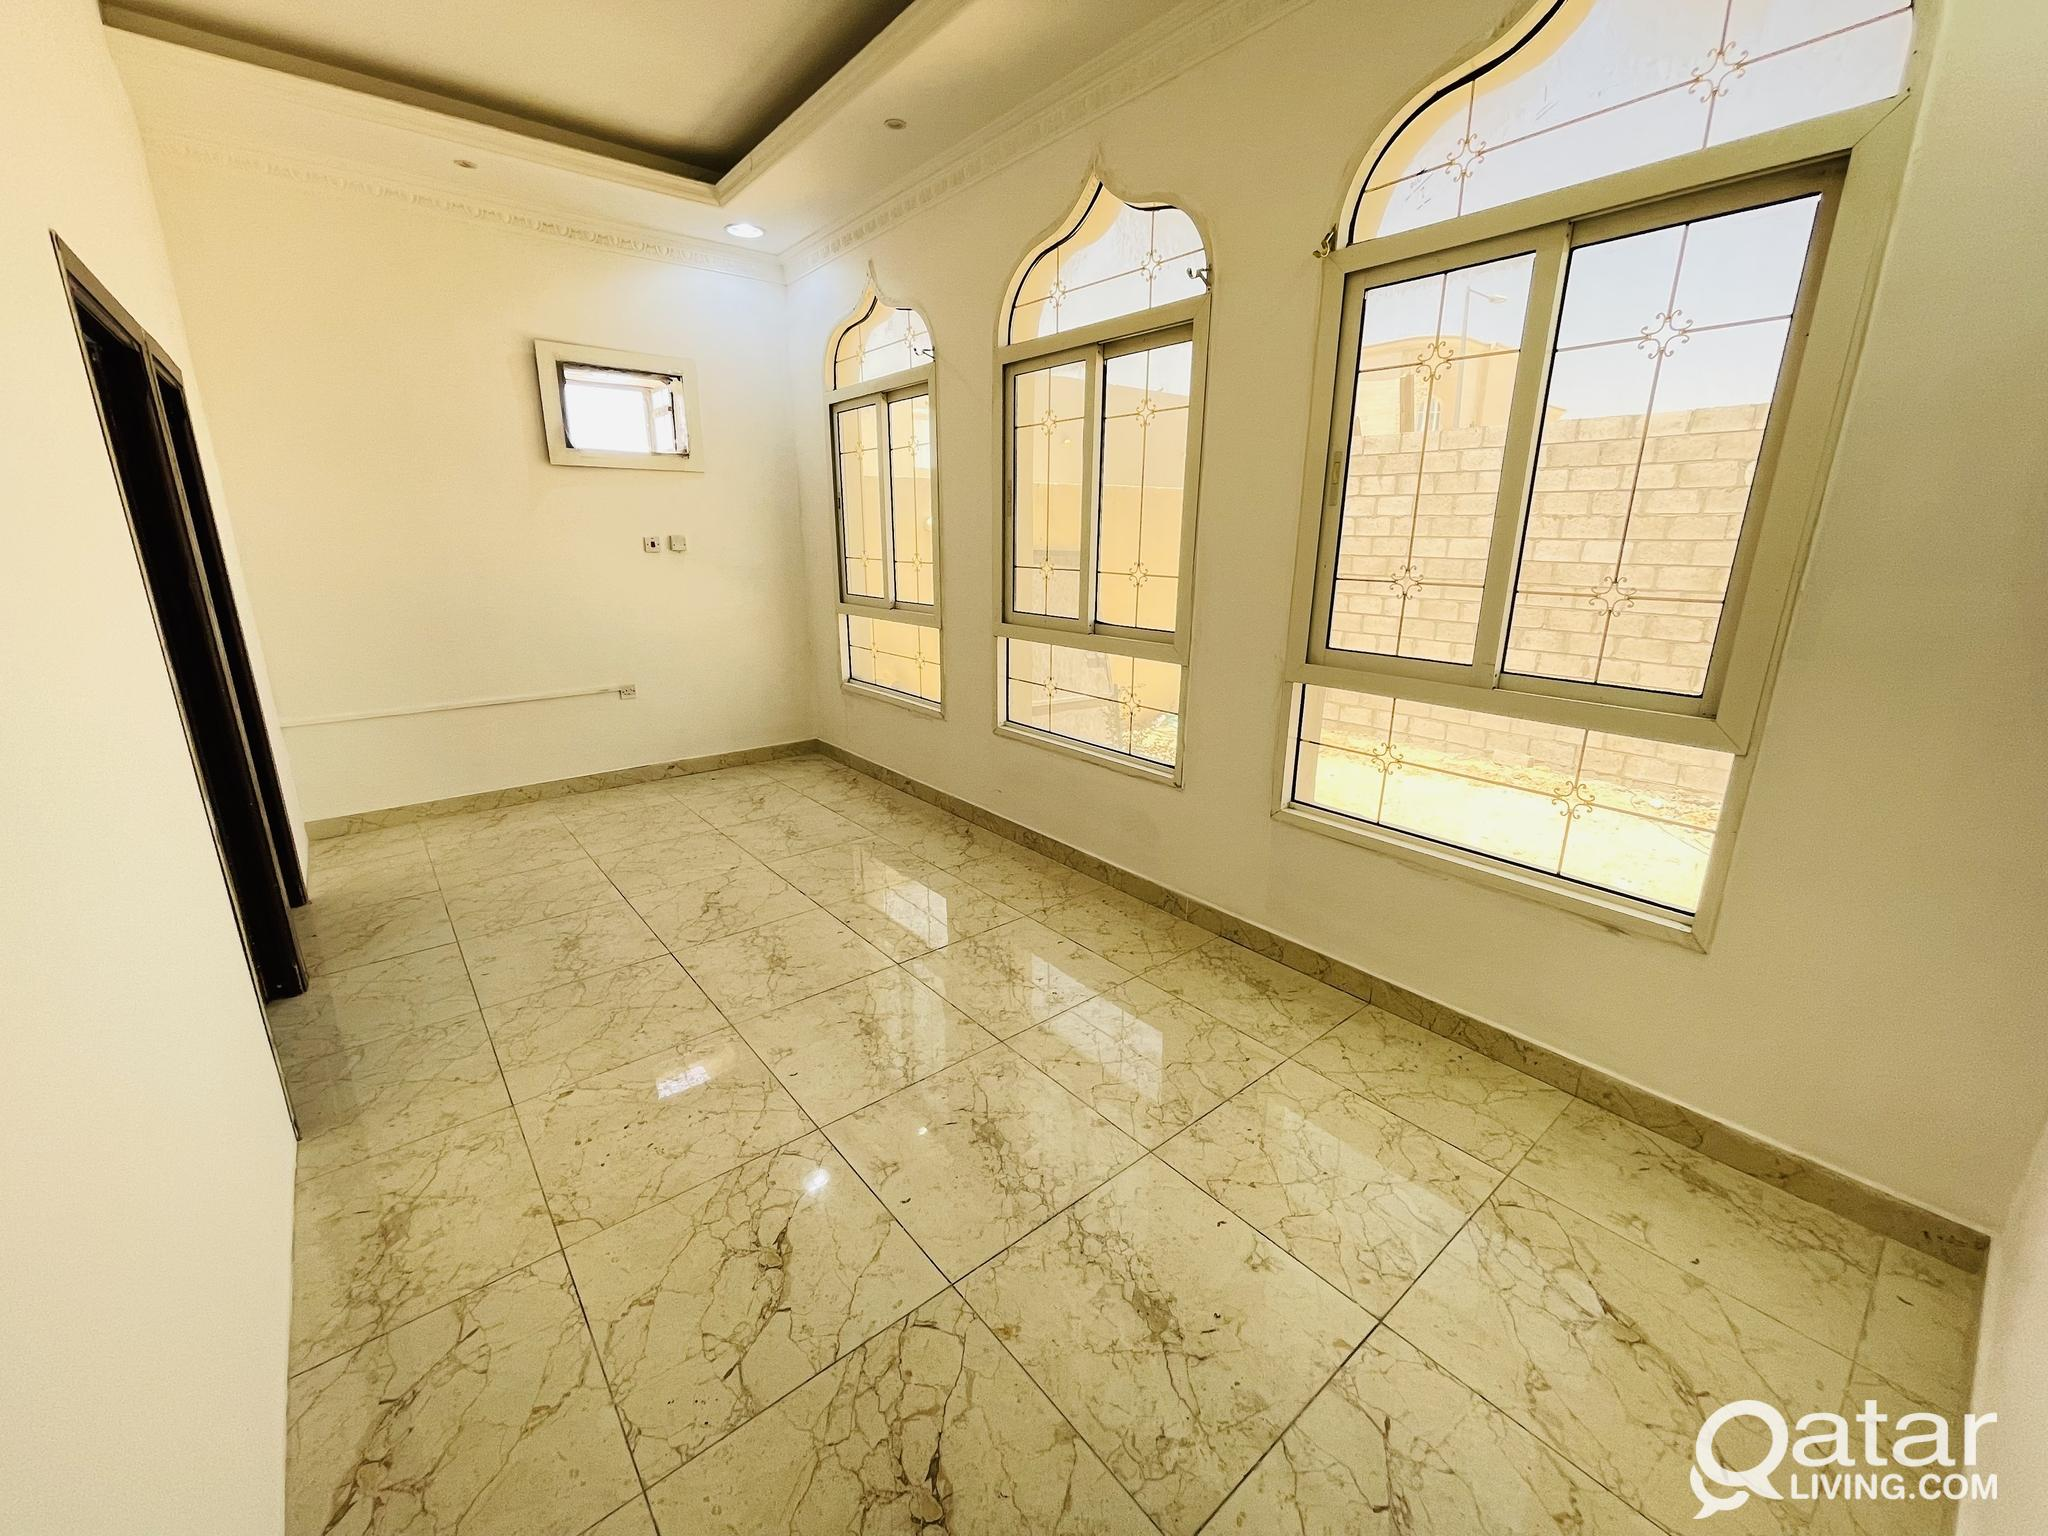 Ground Floor 1Bhk For Rent In Ain Khaled